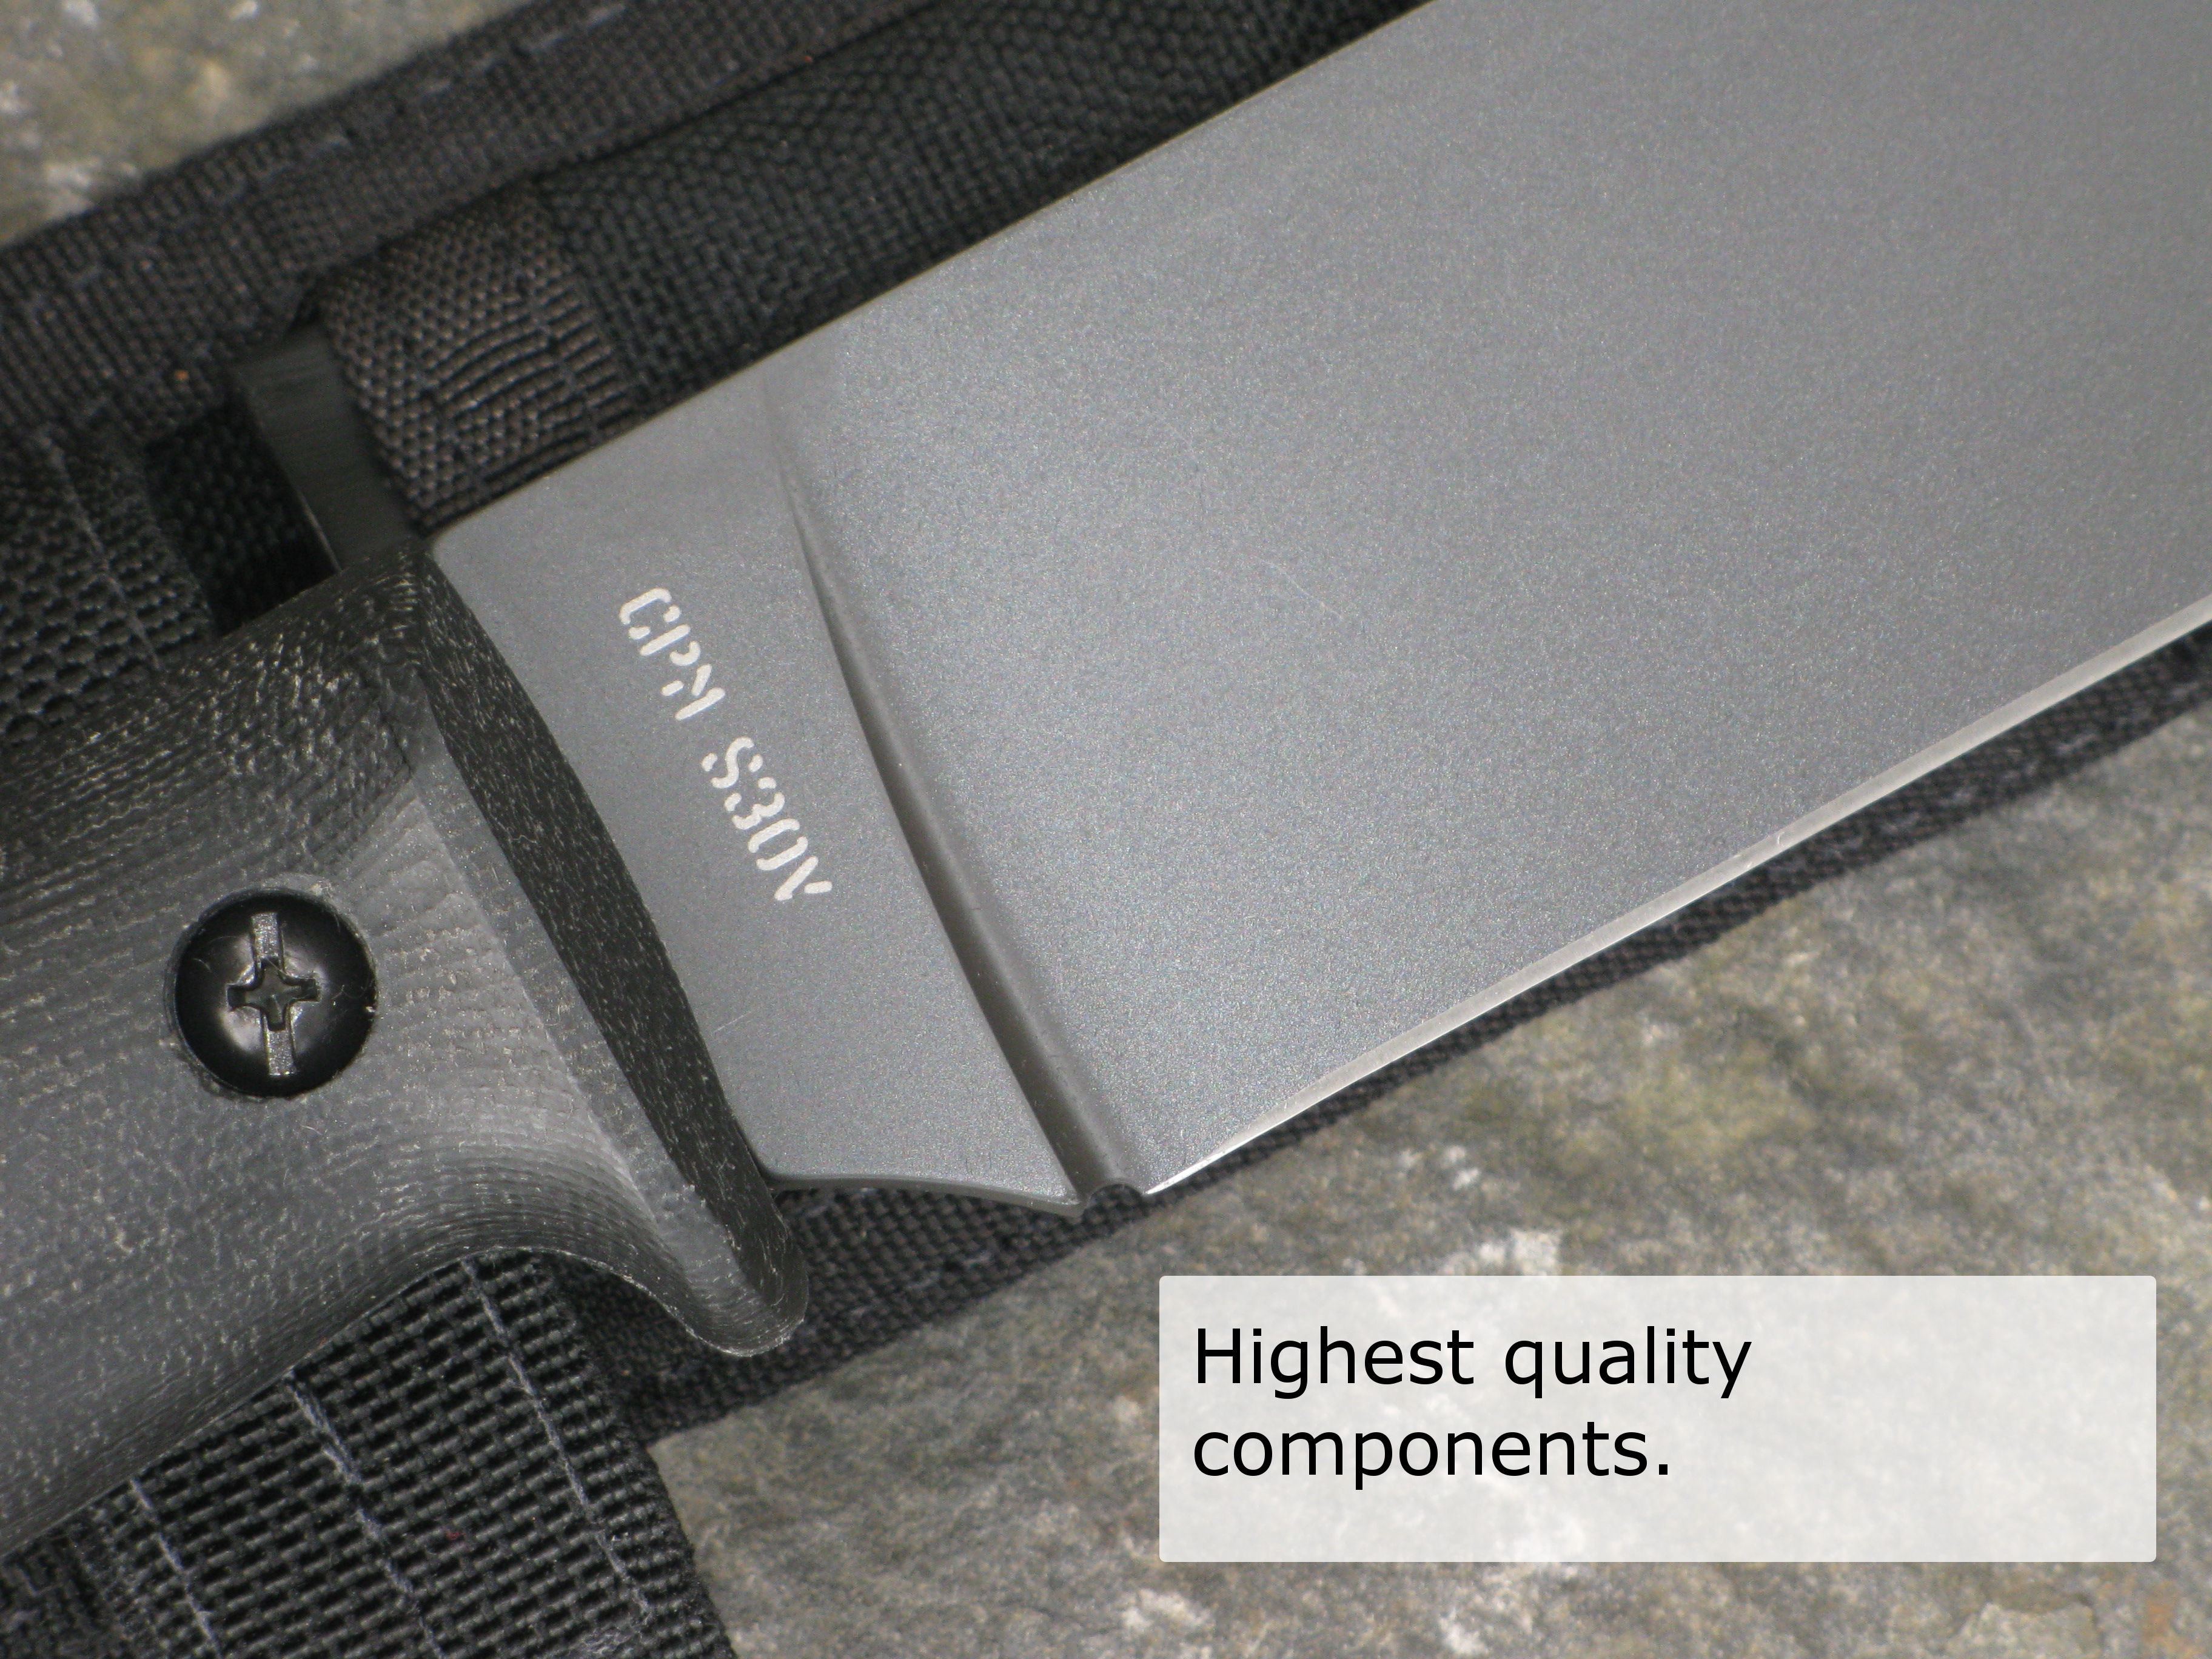 Highest Quality Components